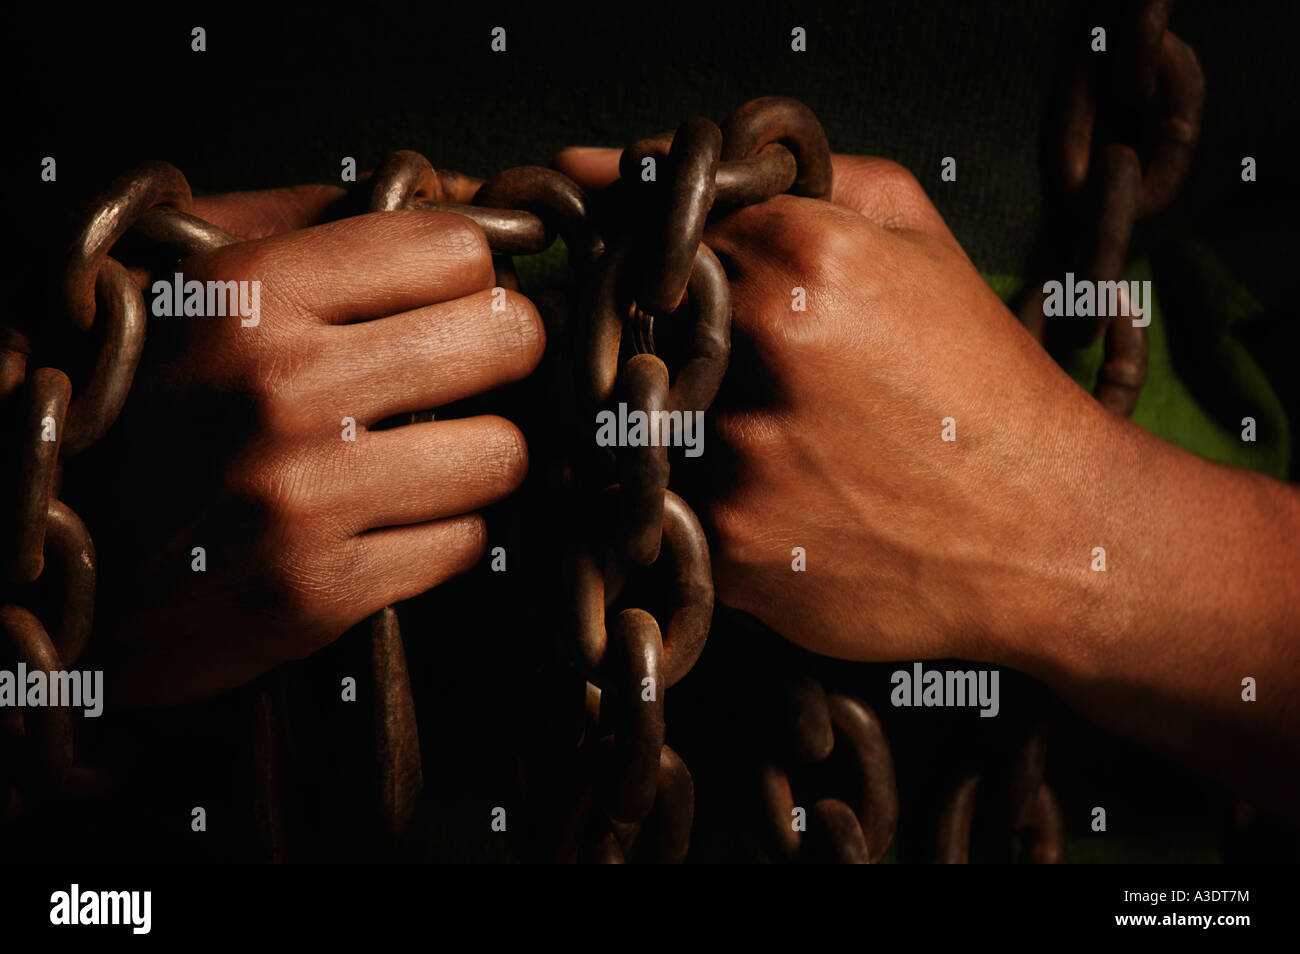 Person bound in chains Stock Photo